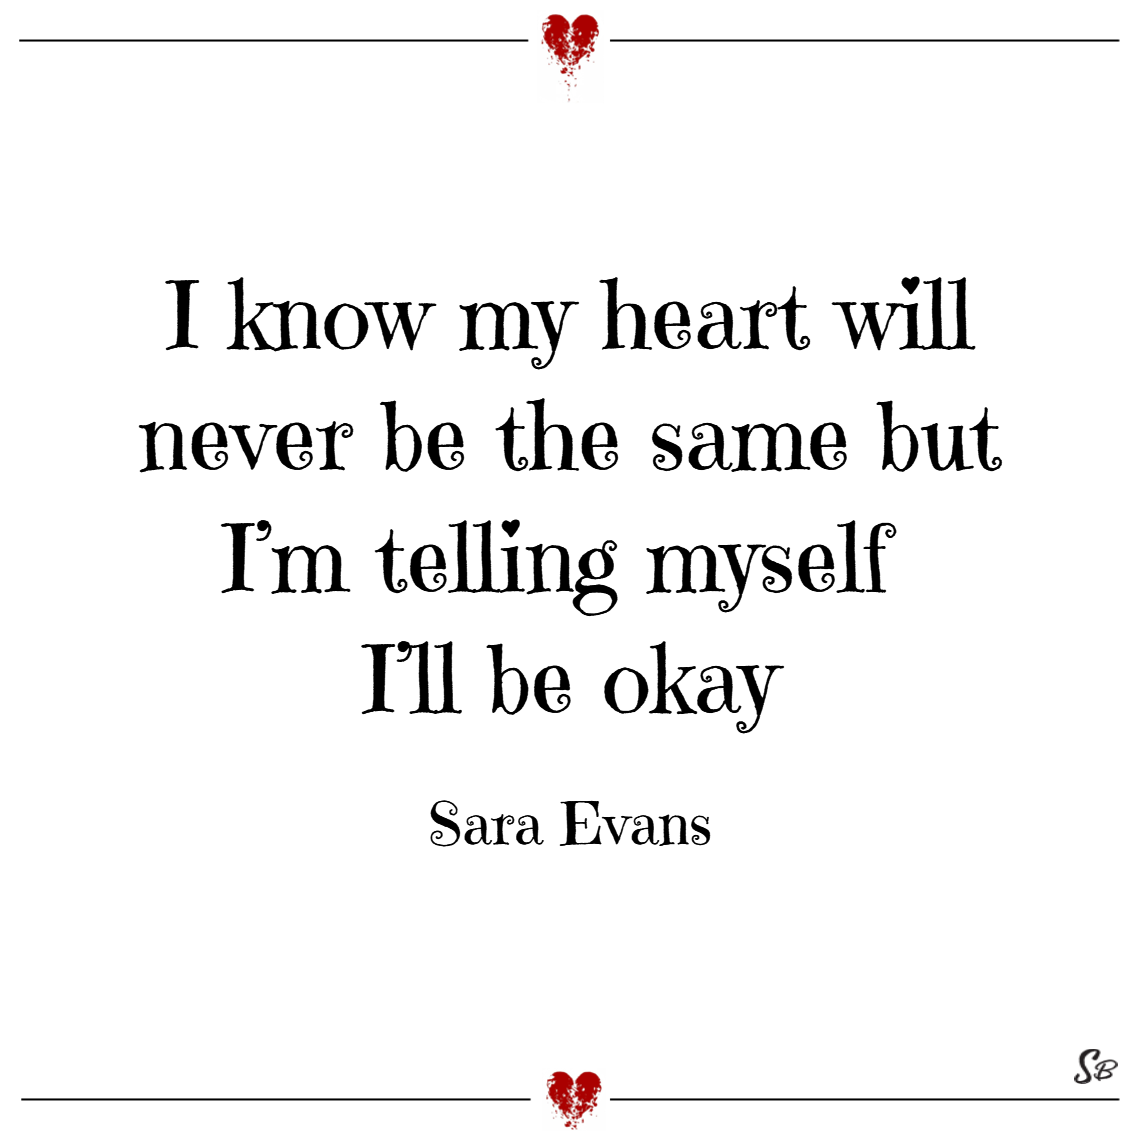 I know my heart will never be the same but i'm telling myself i'll be okay. – sara evans